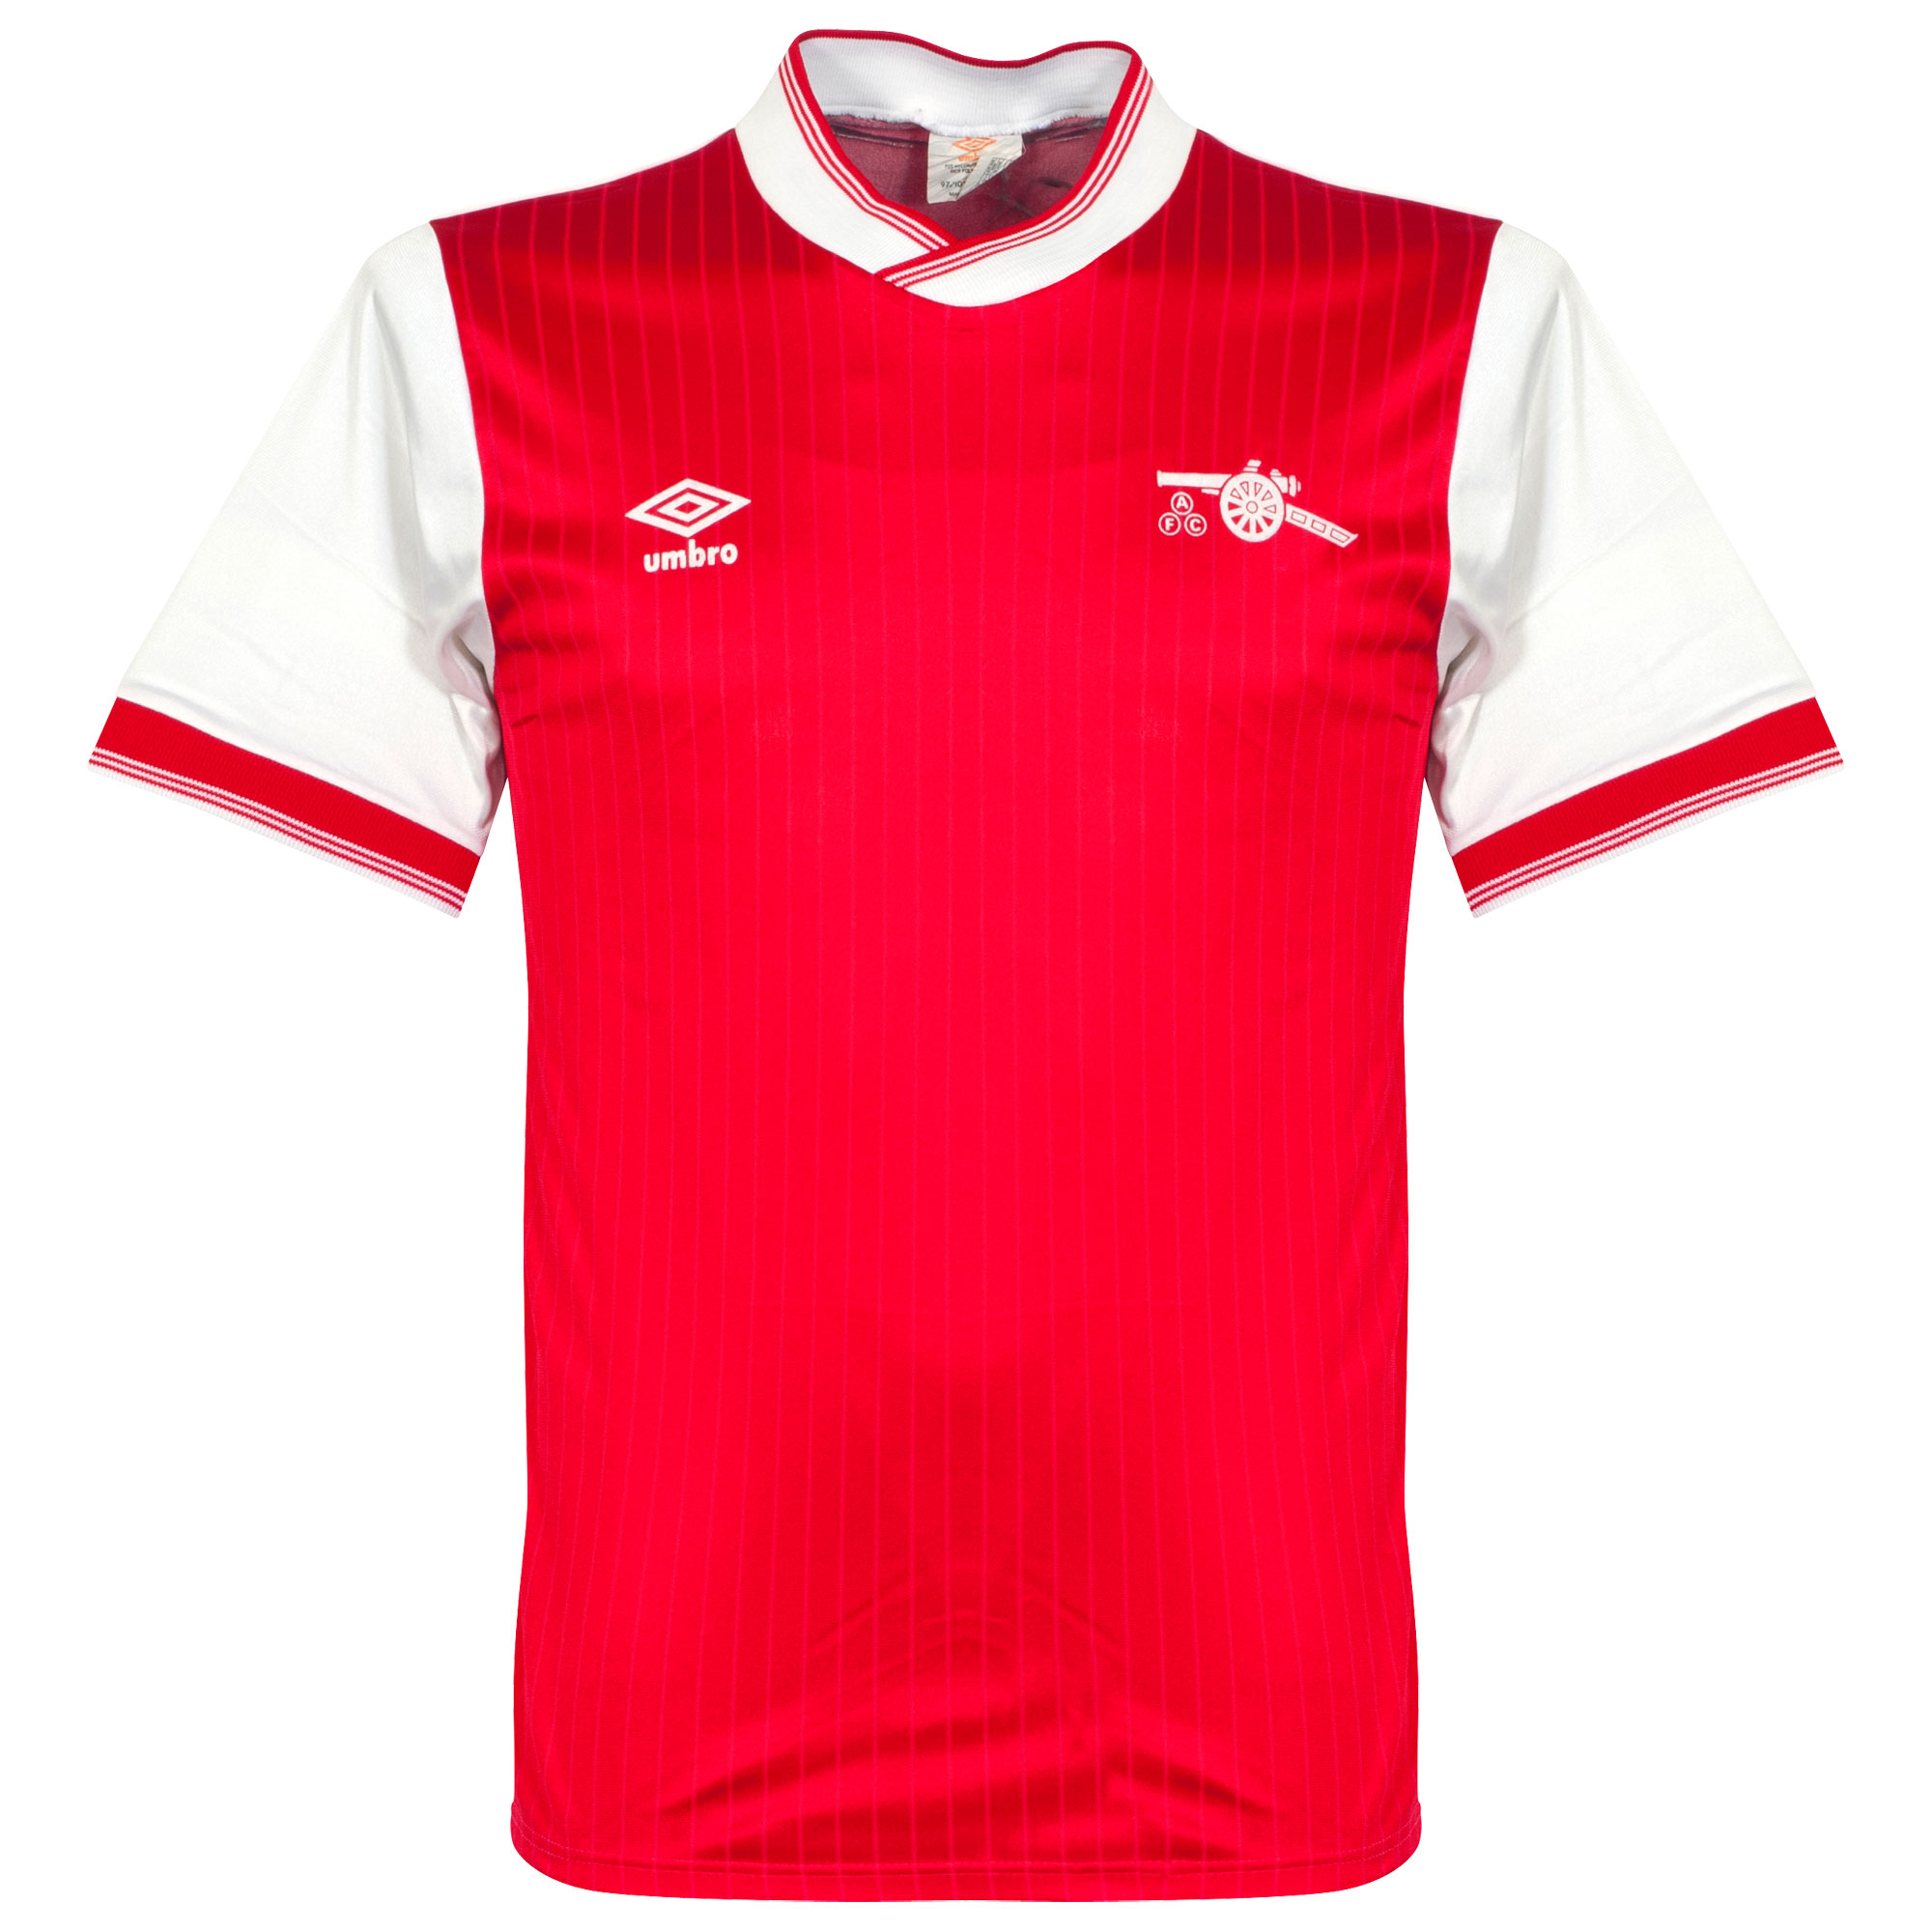 Umbro Arsenal 1984-1985 Home Shirt - USED Condition (Great) - Size M